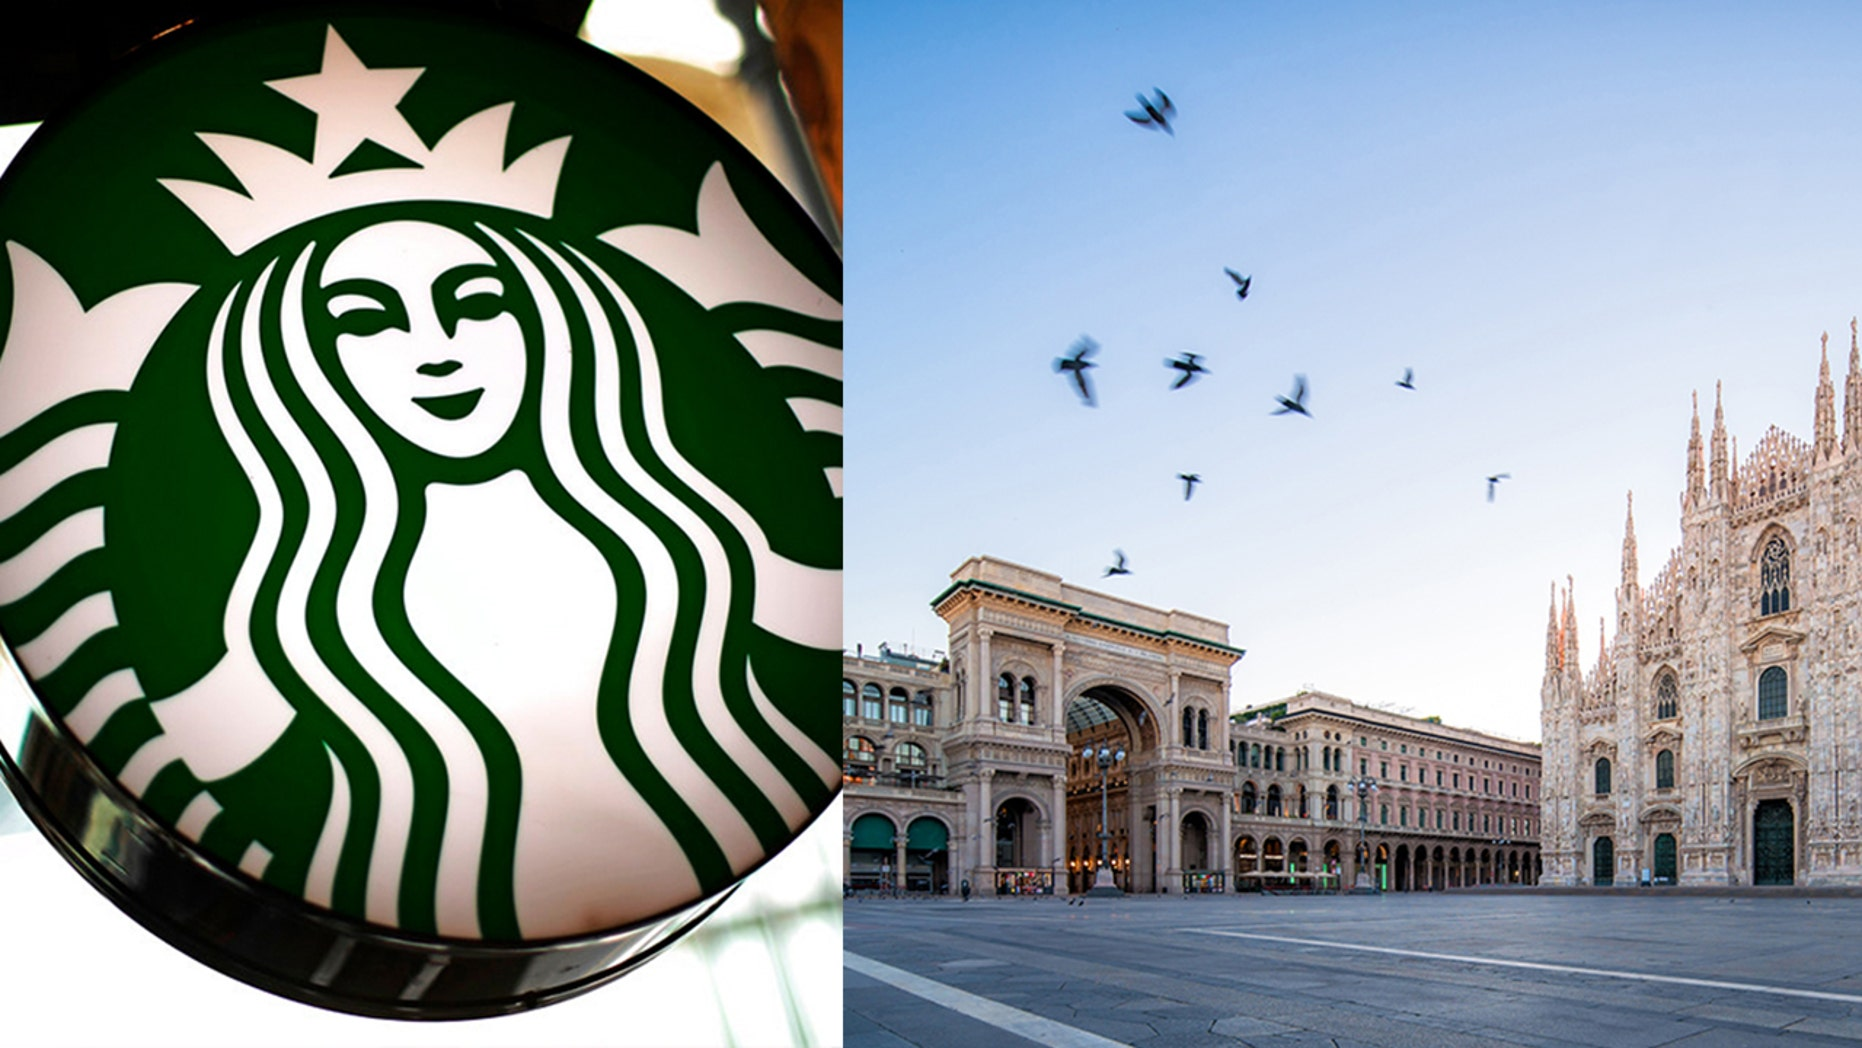 The gorgeous Italian city apparently isn't too keen on the coffee megachain.